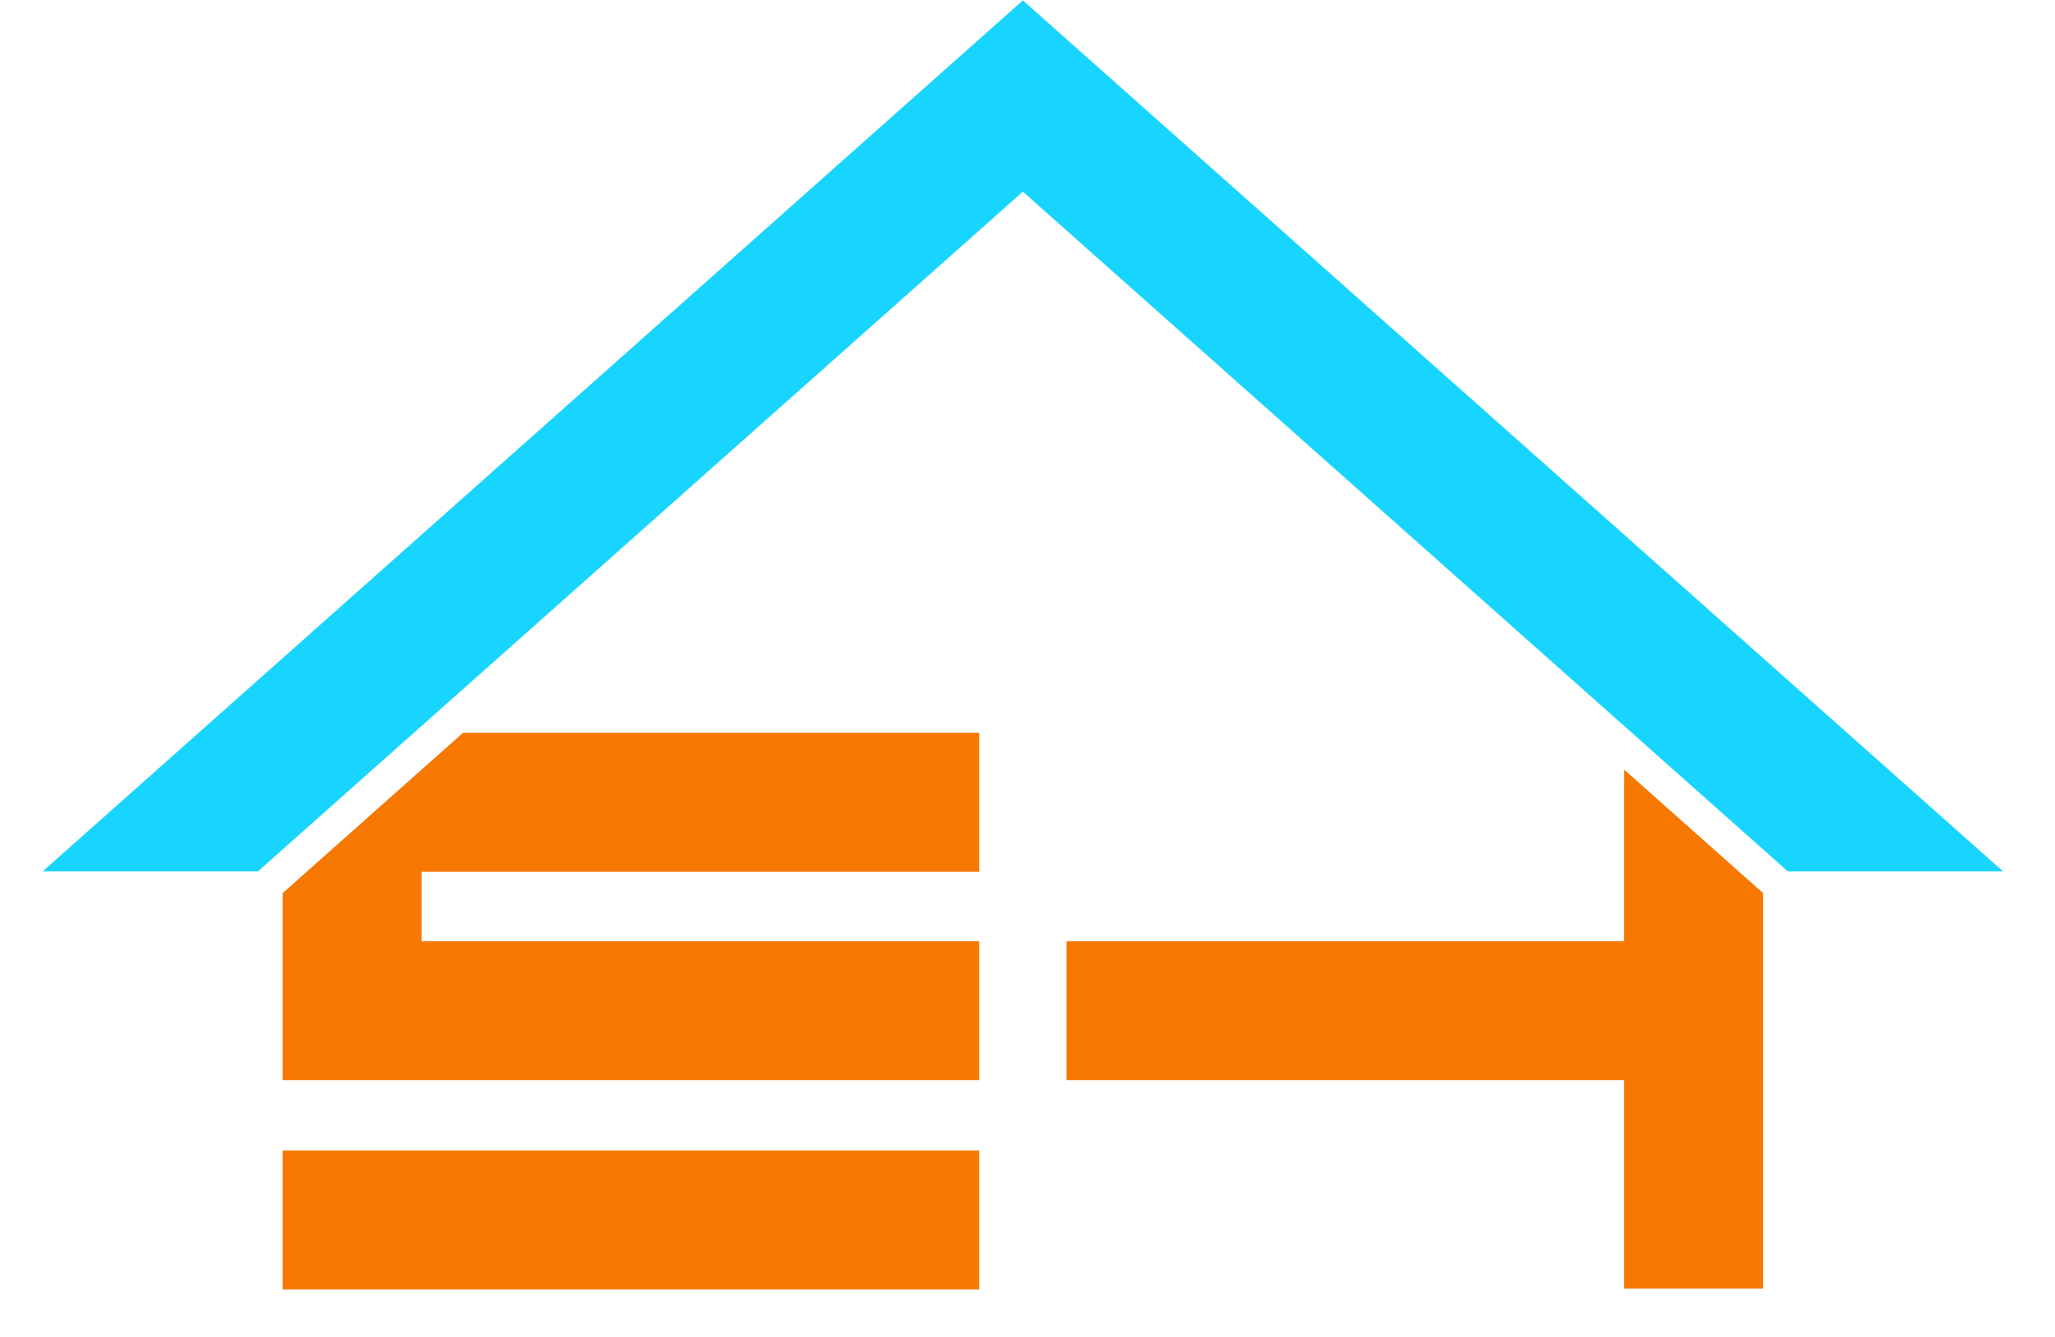 Skye Homes, LLC